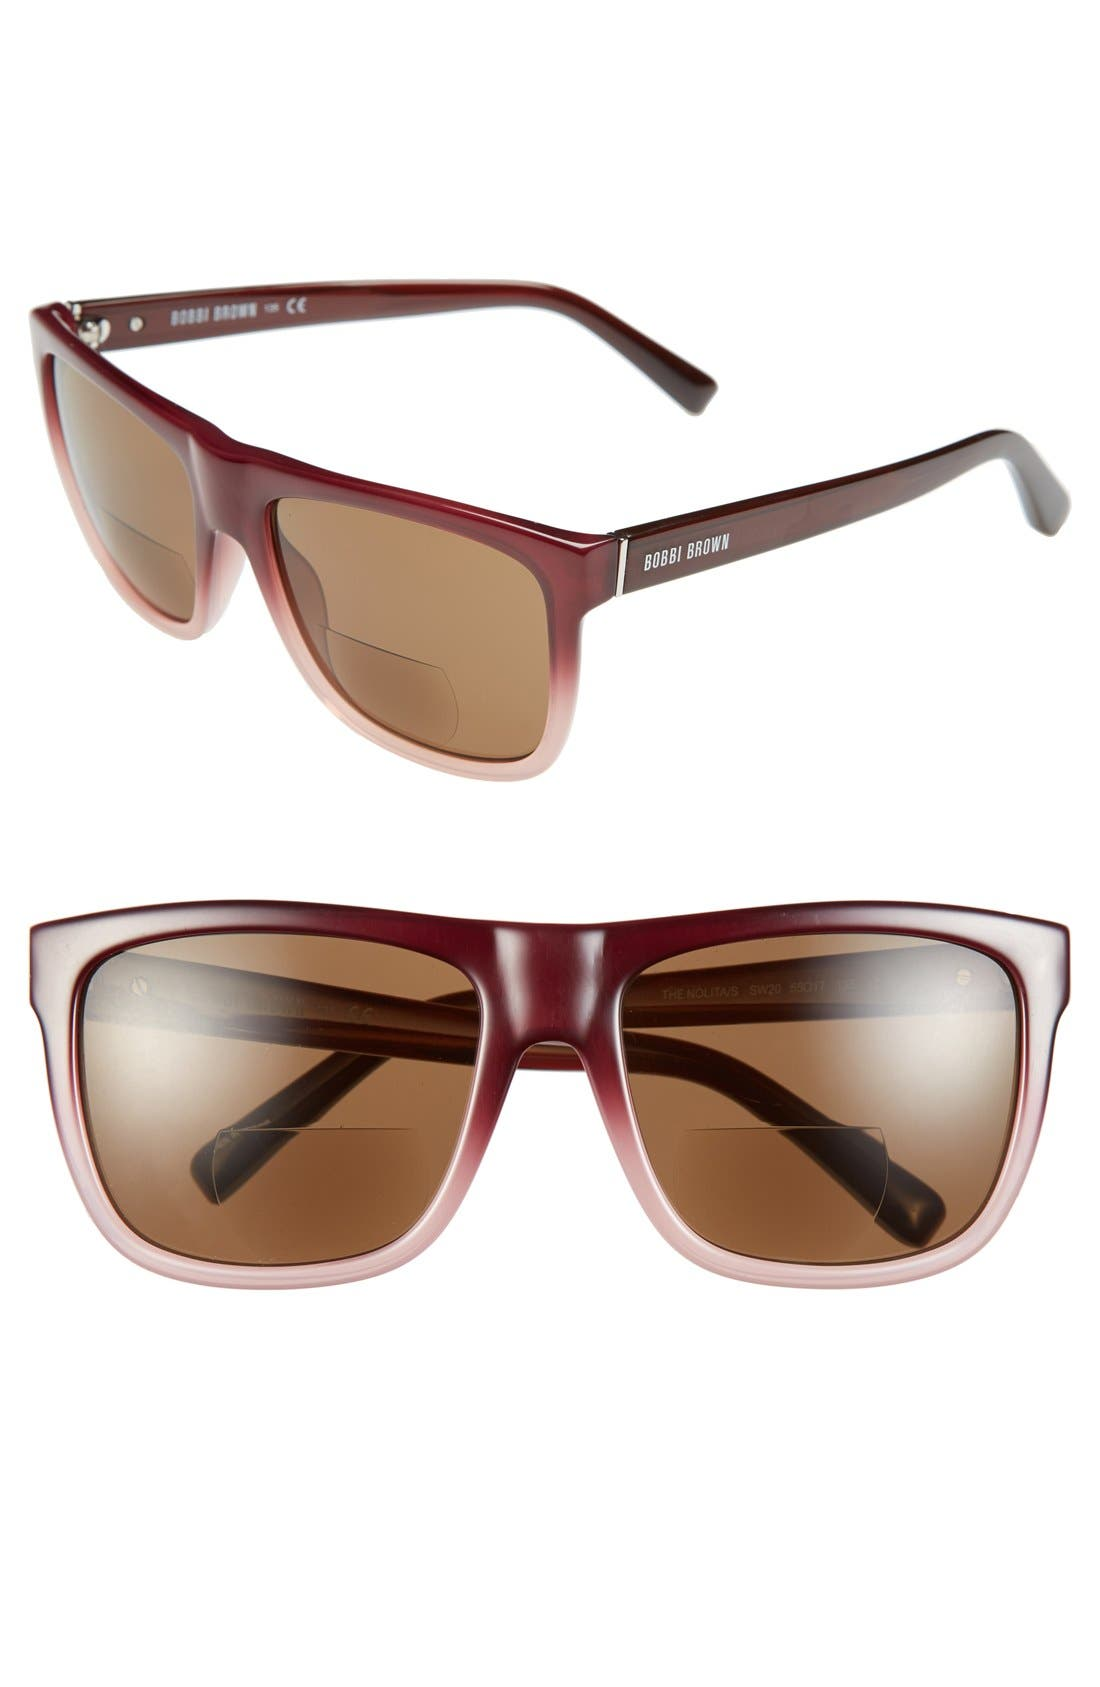 Main Image - Bobbi Brown 'The Nolita' 55mm Reading Sunglasses (2 for $88)